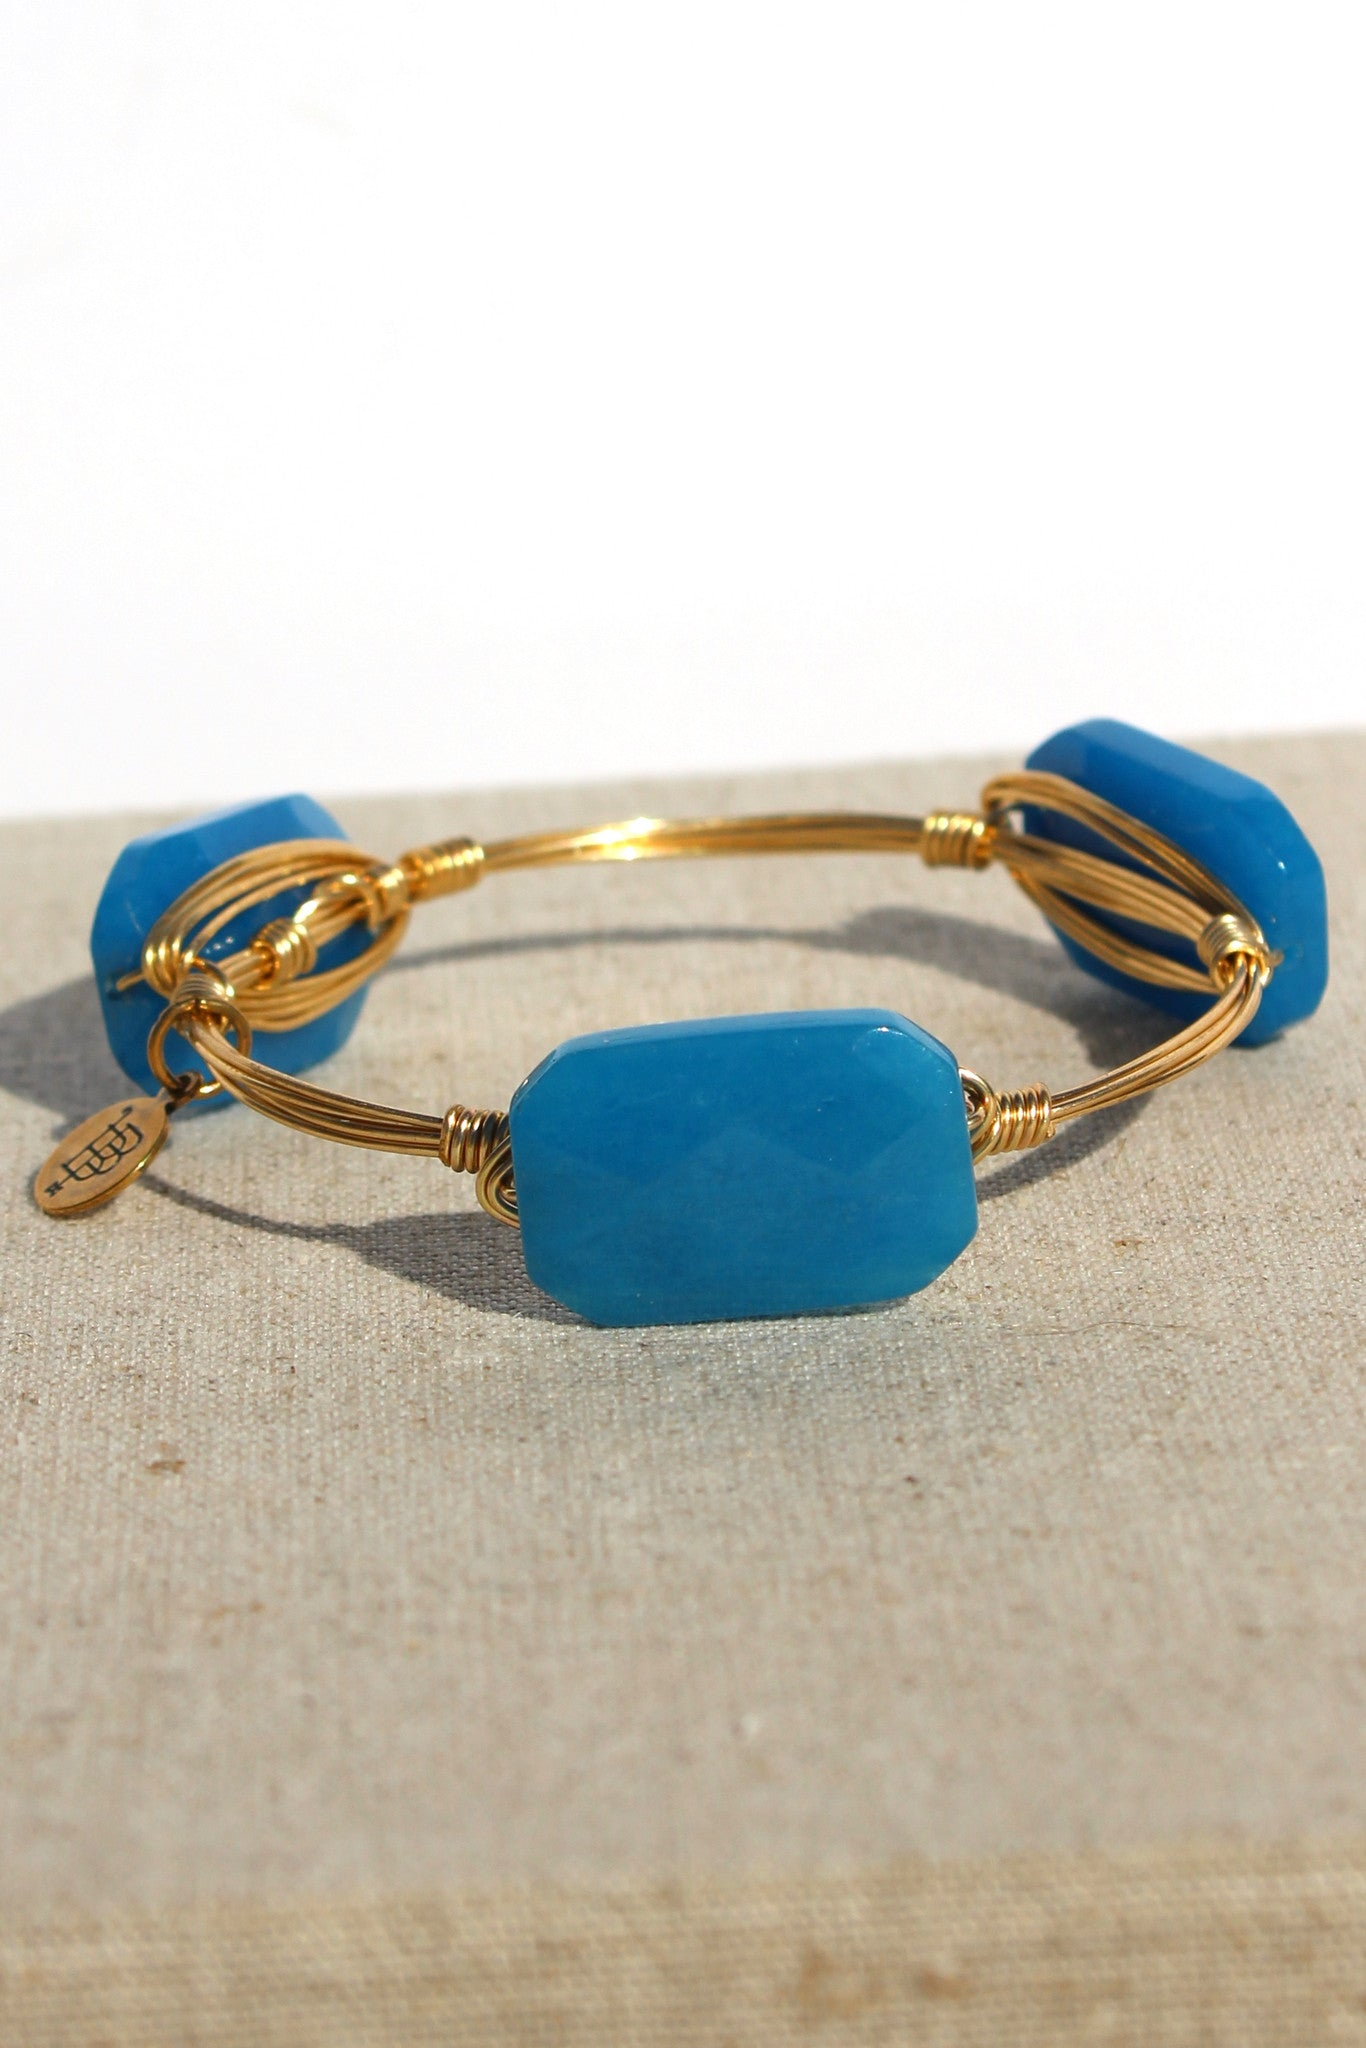 Bourbon and Boweties: Bangle, Blue